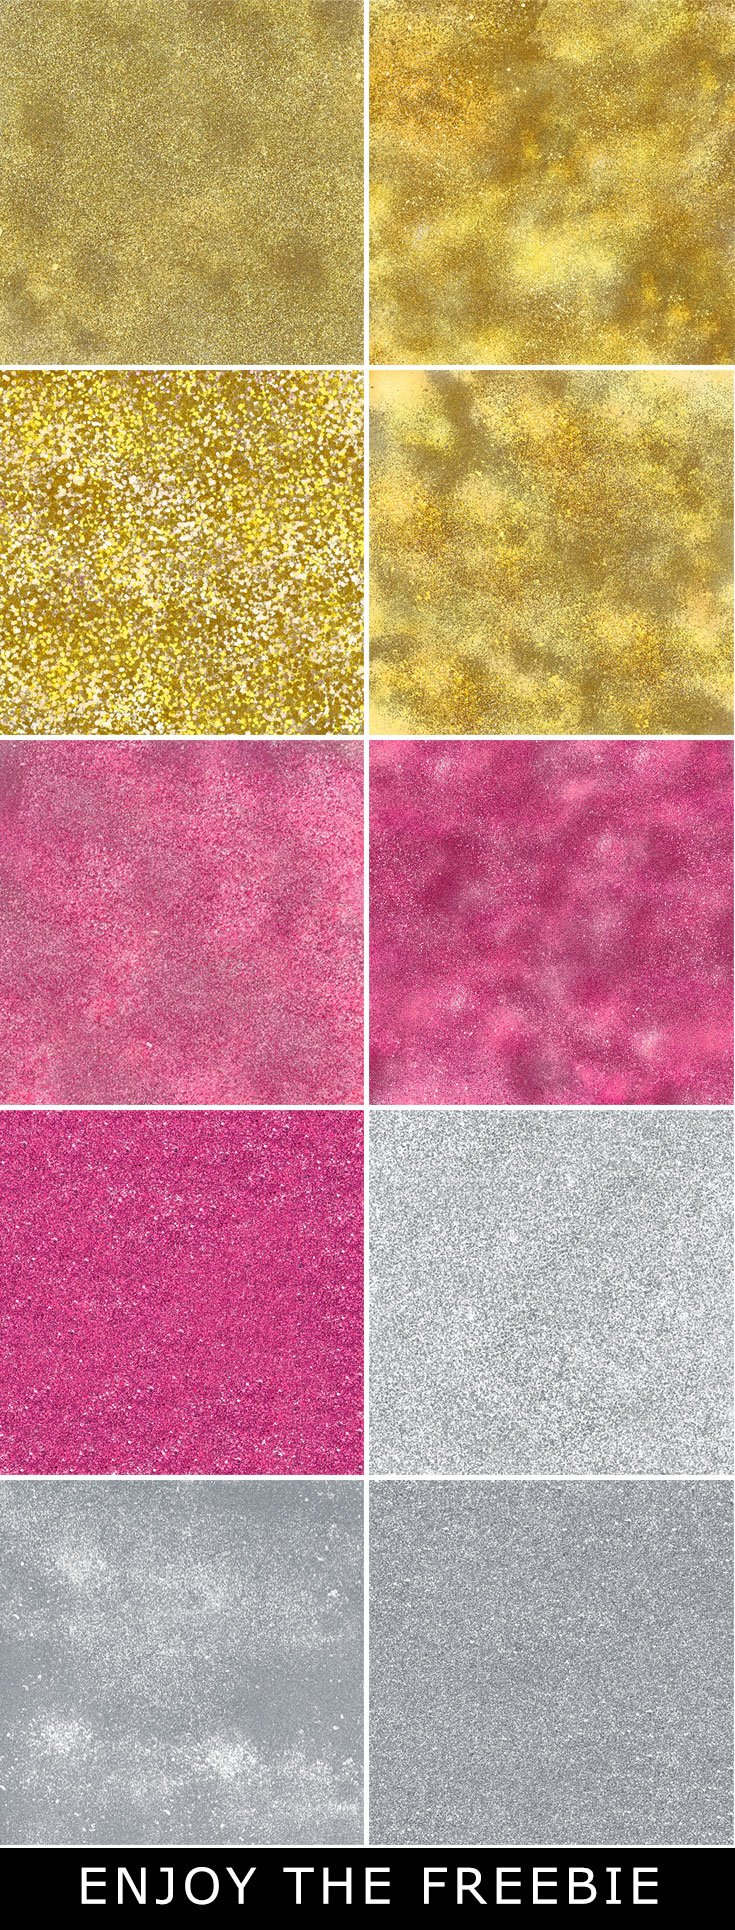 10 Free Glitter Textures